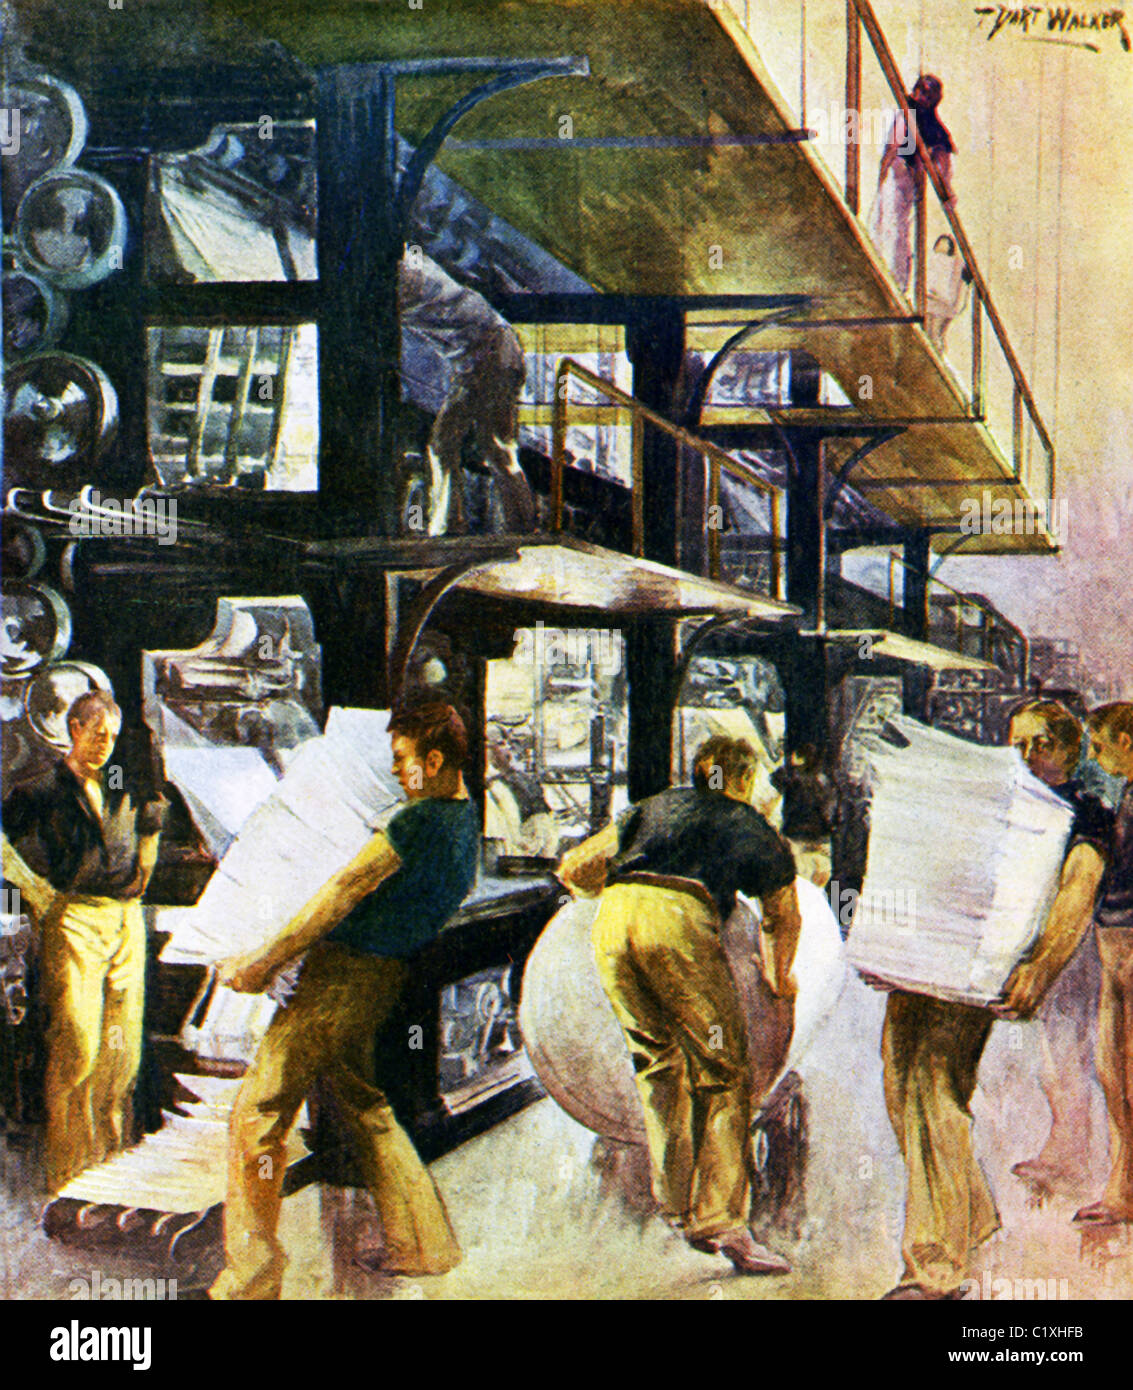 This 1903 illustration by T. Dart Walker shows the press room of a daily newspaper in the U.S. at the time. - Stock Image